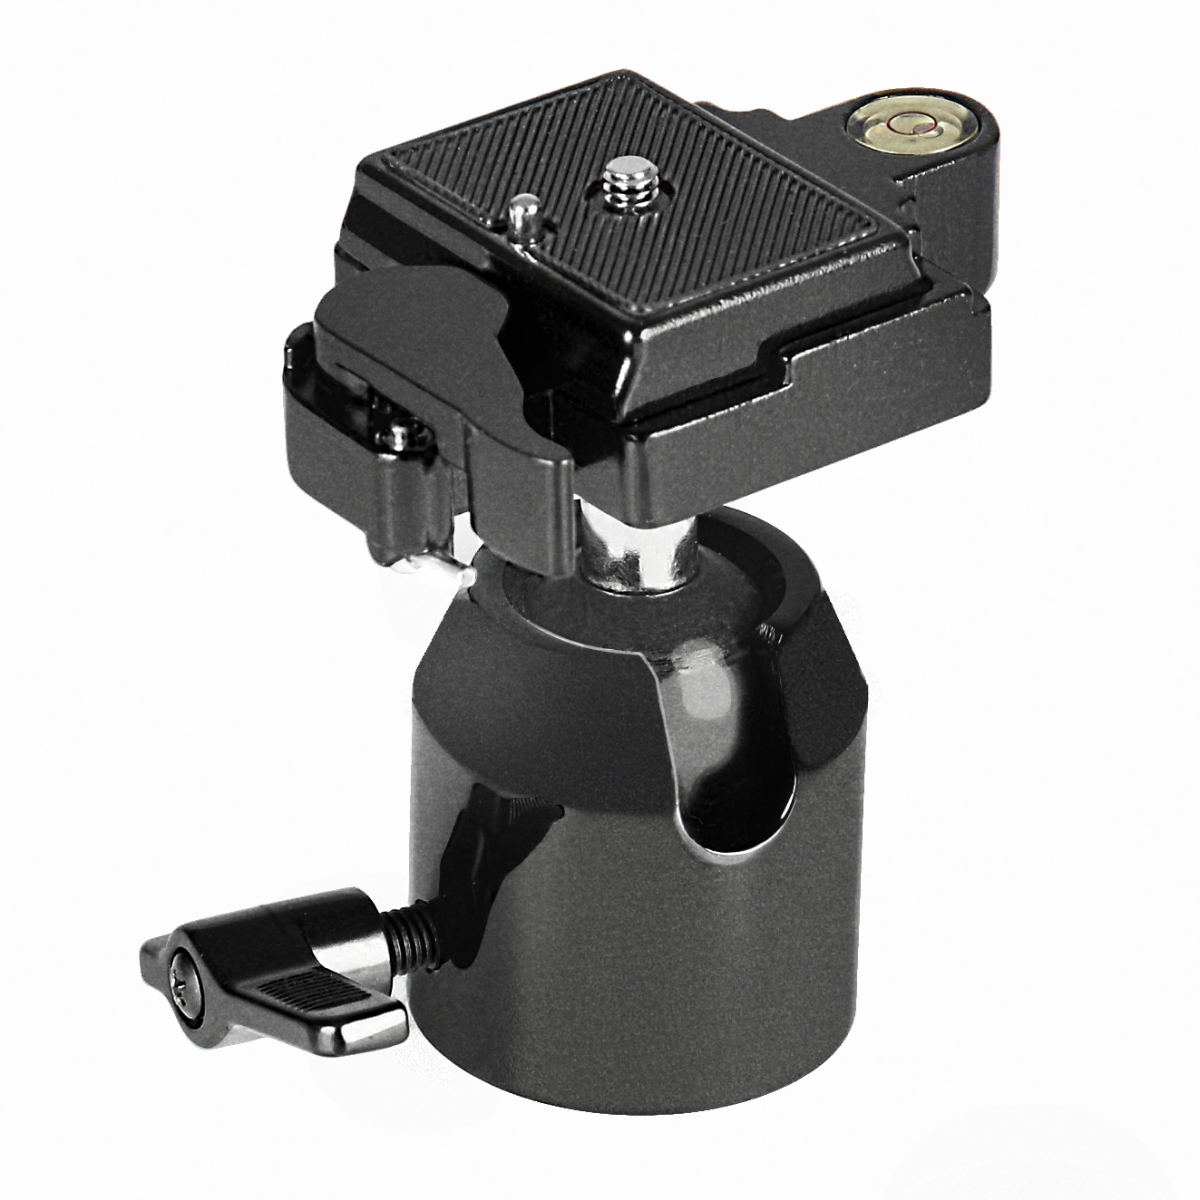 Walimex FT-002H Pro Ball Head